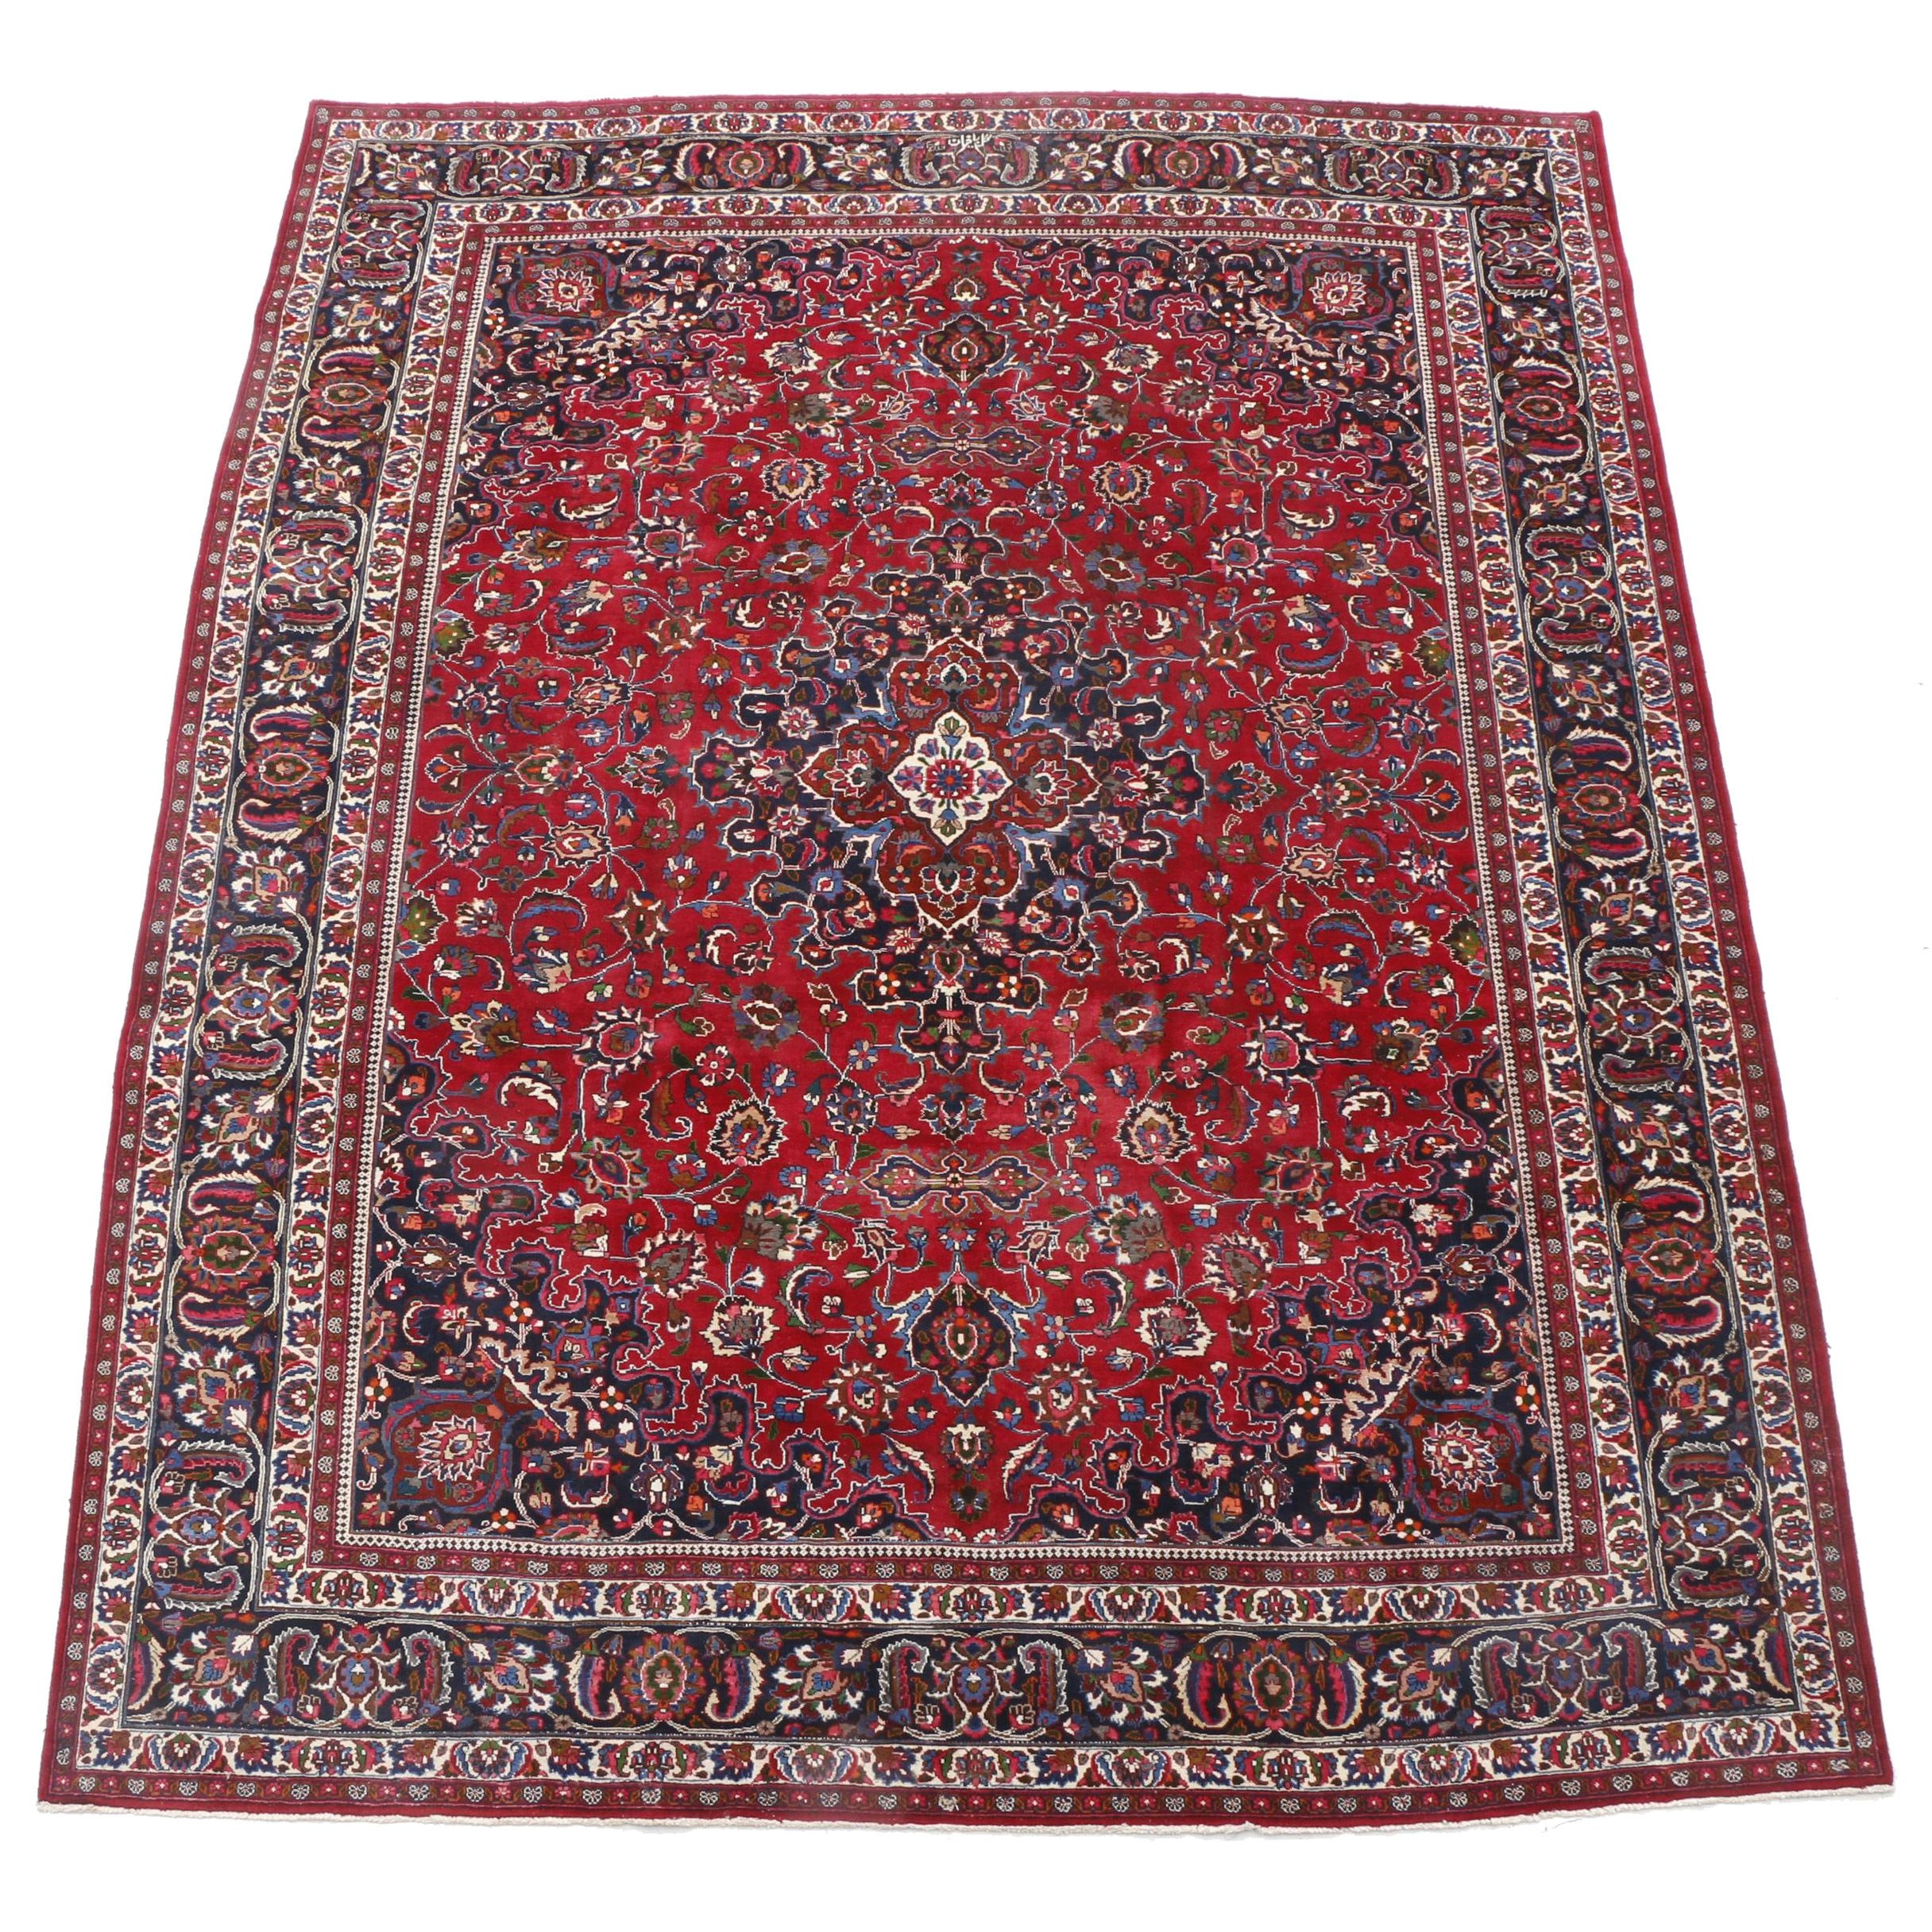 Hand-Knotted Indo-Persian Signed Mashhad Room-Sized Rug